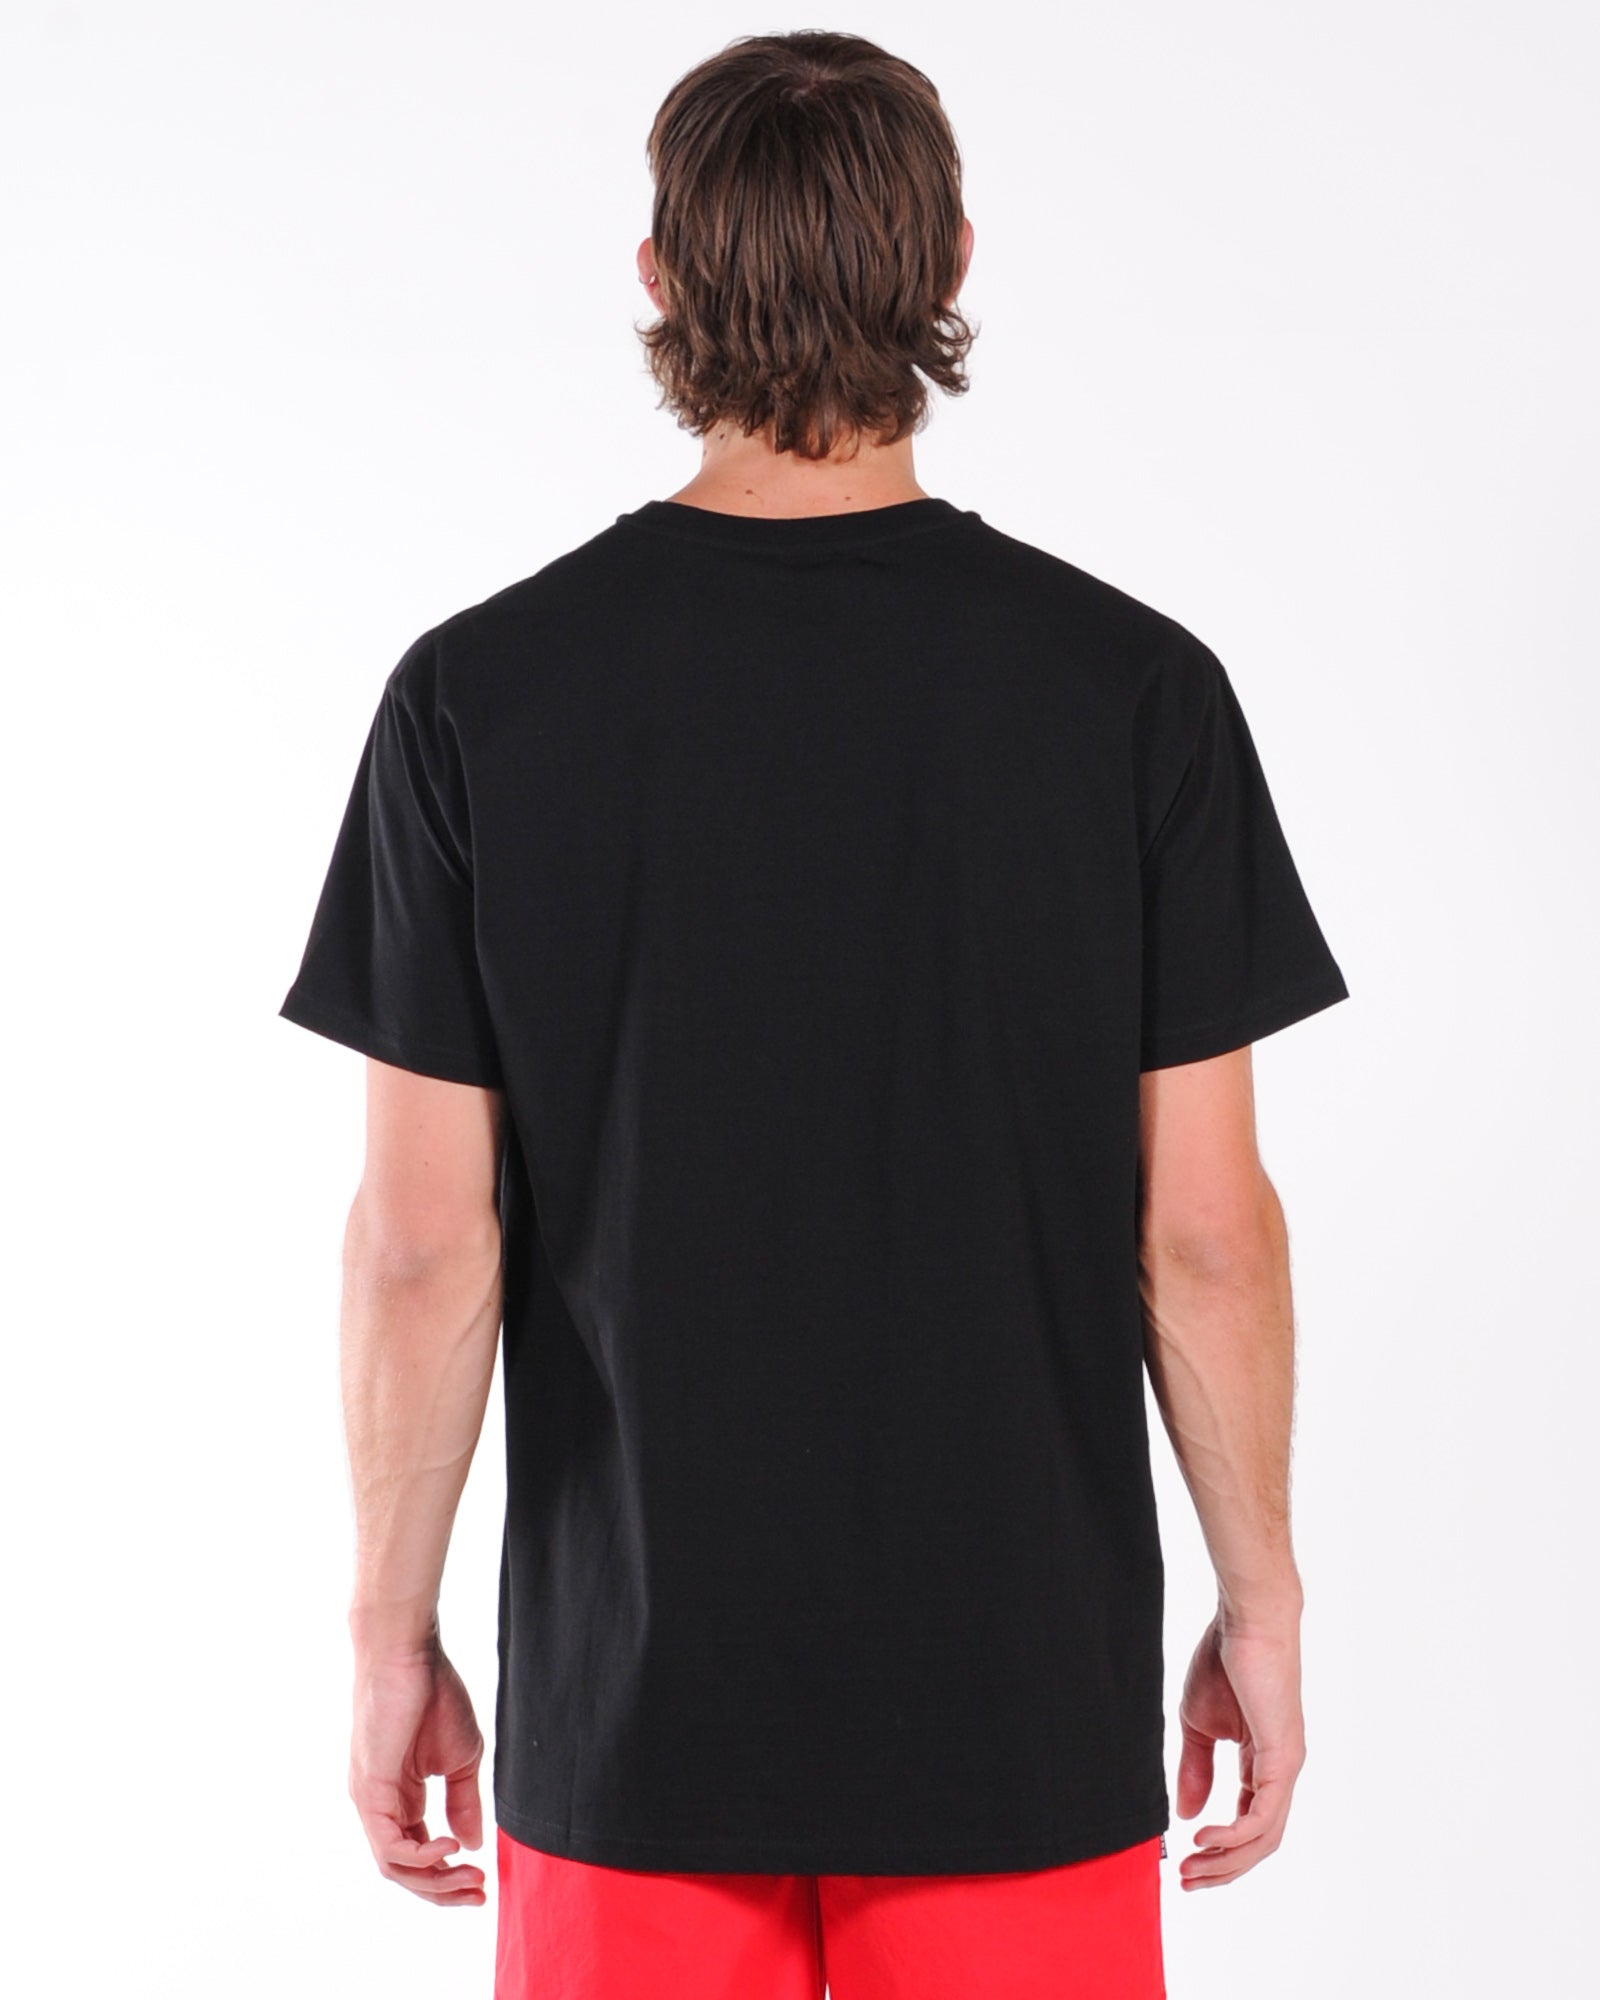 Wndrr Slate Custom Fit Tee - Black